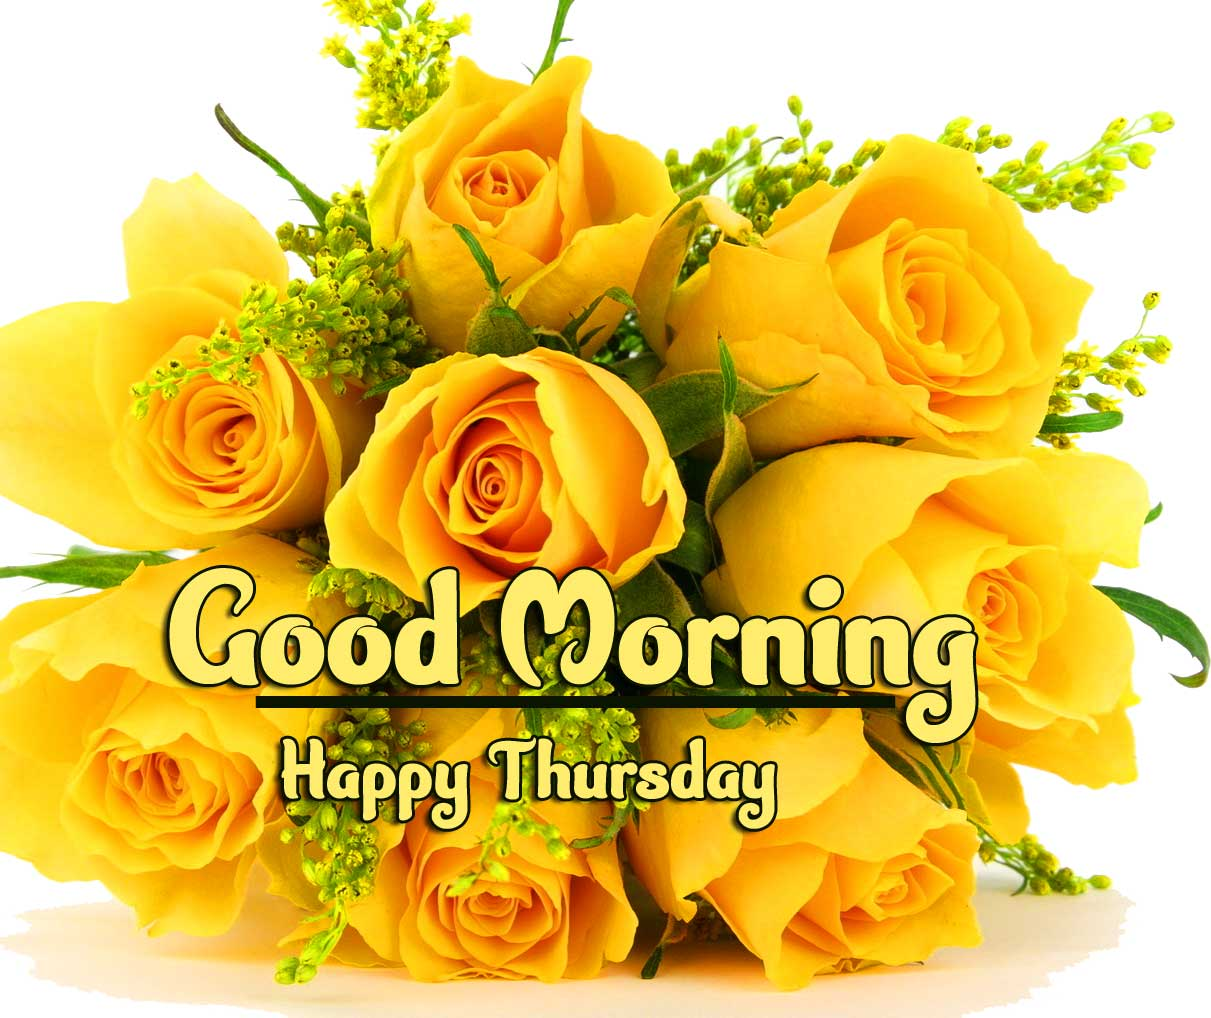 Thursday Good Morning Images Pics pictures With Yellow Rose